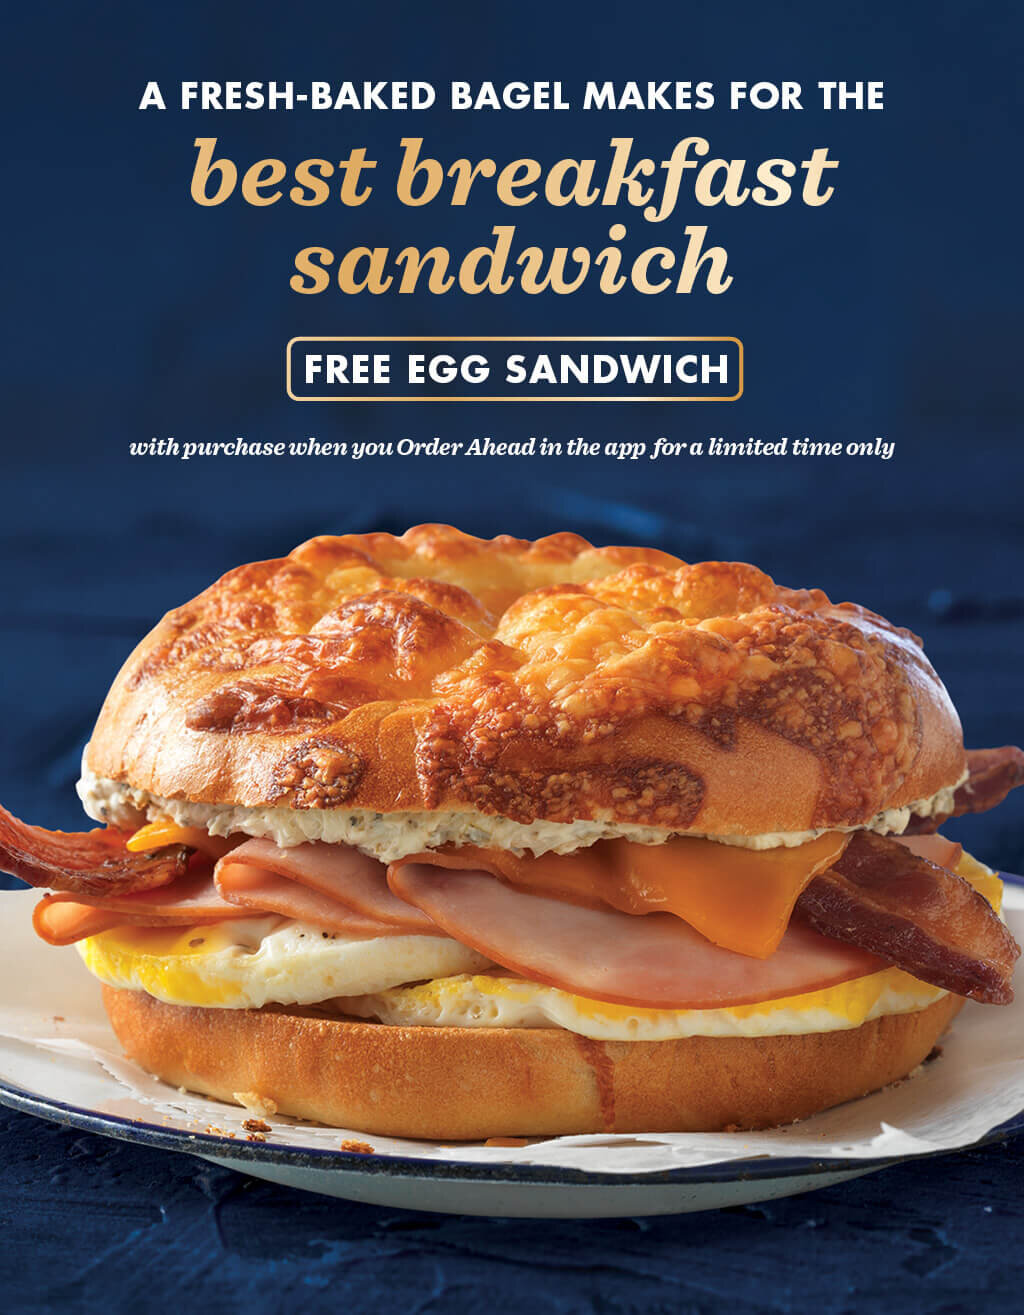 ROTATING IMAGE: Taste for Yourself. The Best Bast Breakfast Round. Try a Free Egg Sandwich of your choice when your Order Ahead (with purchase - for a limited time - one time use only). Click to download our app!